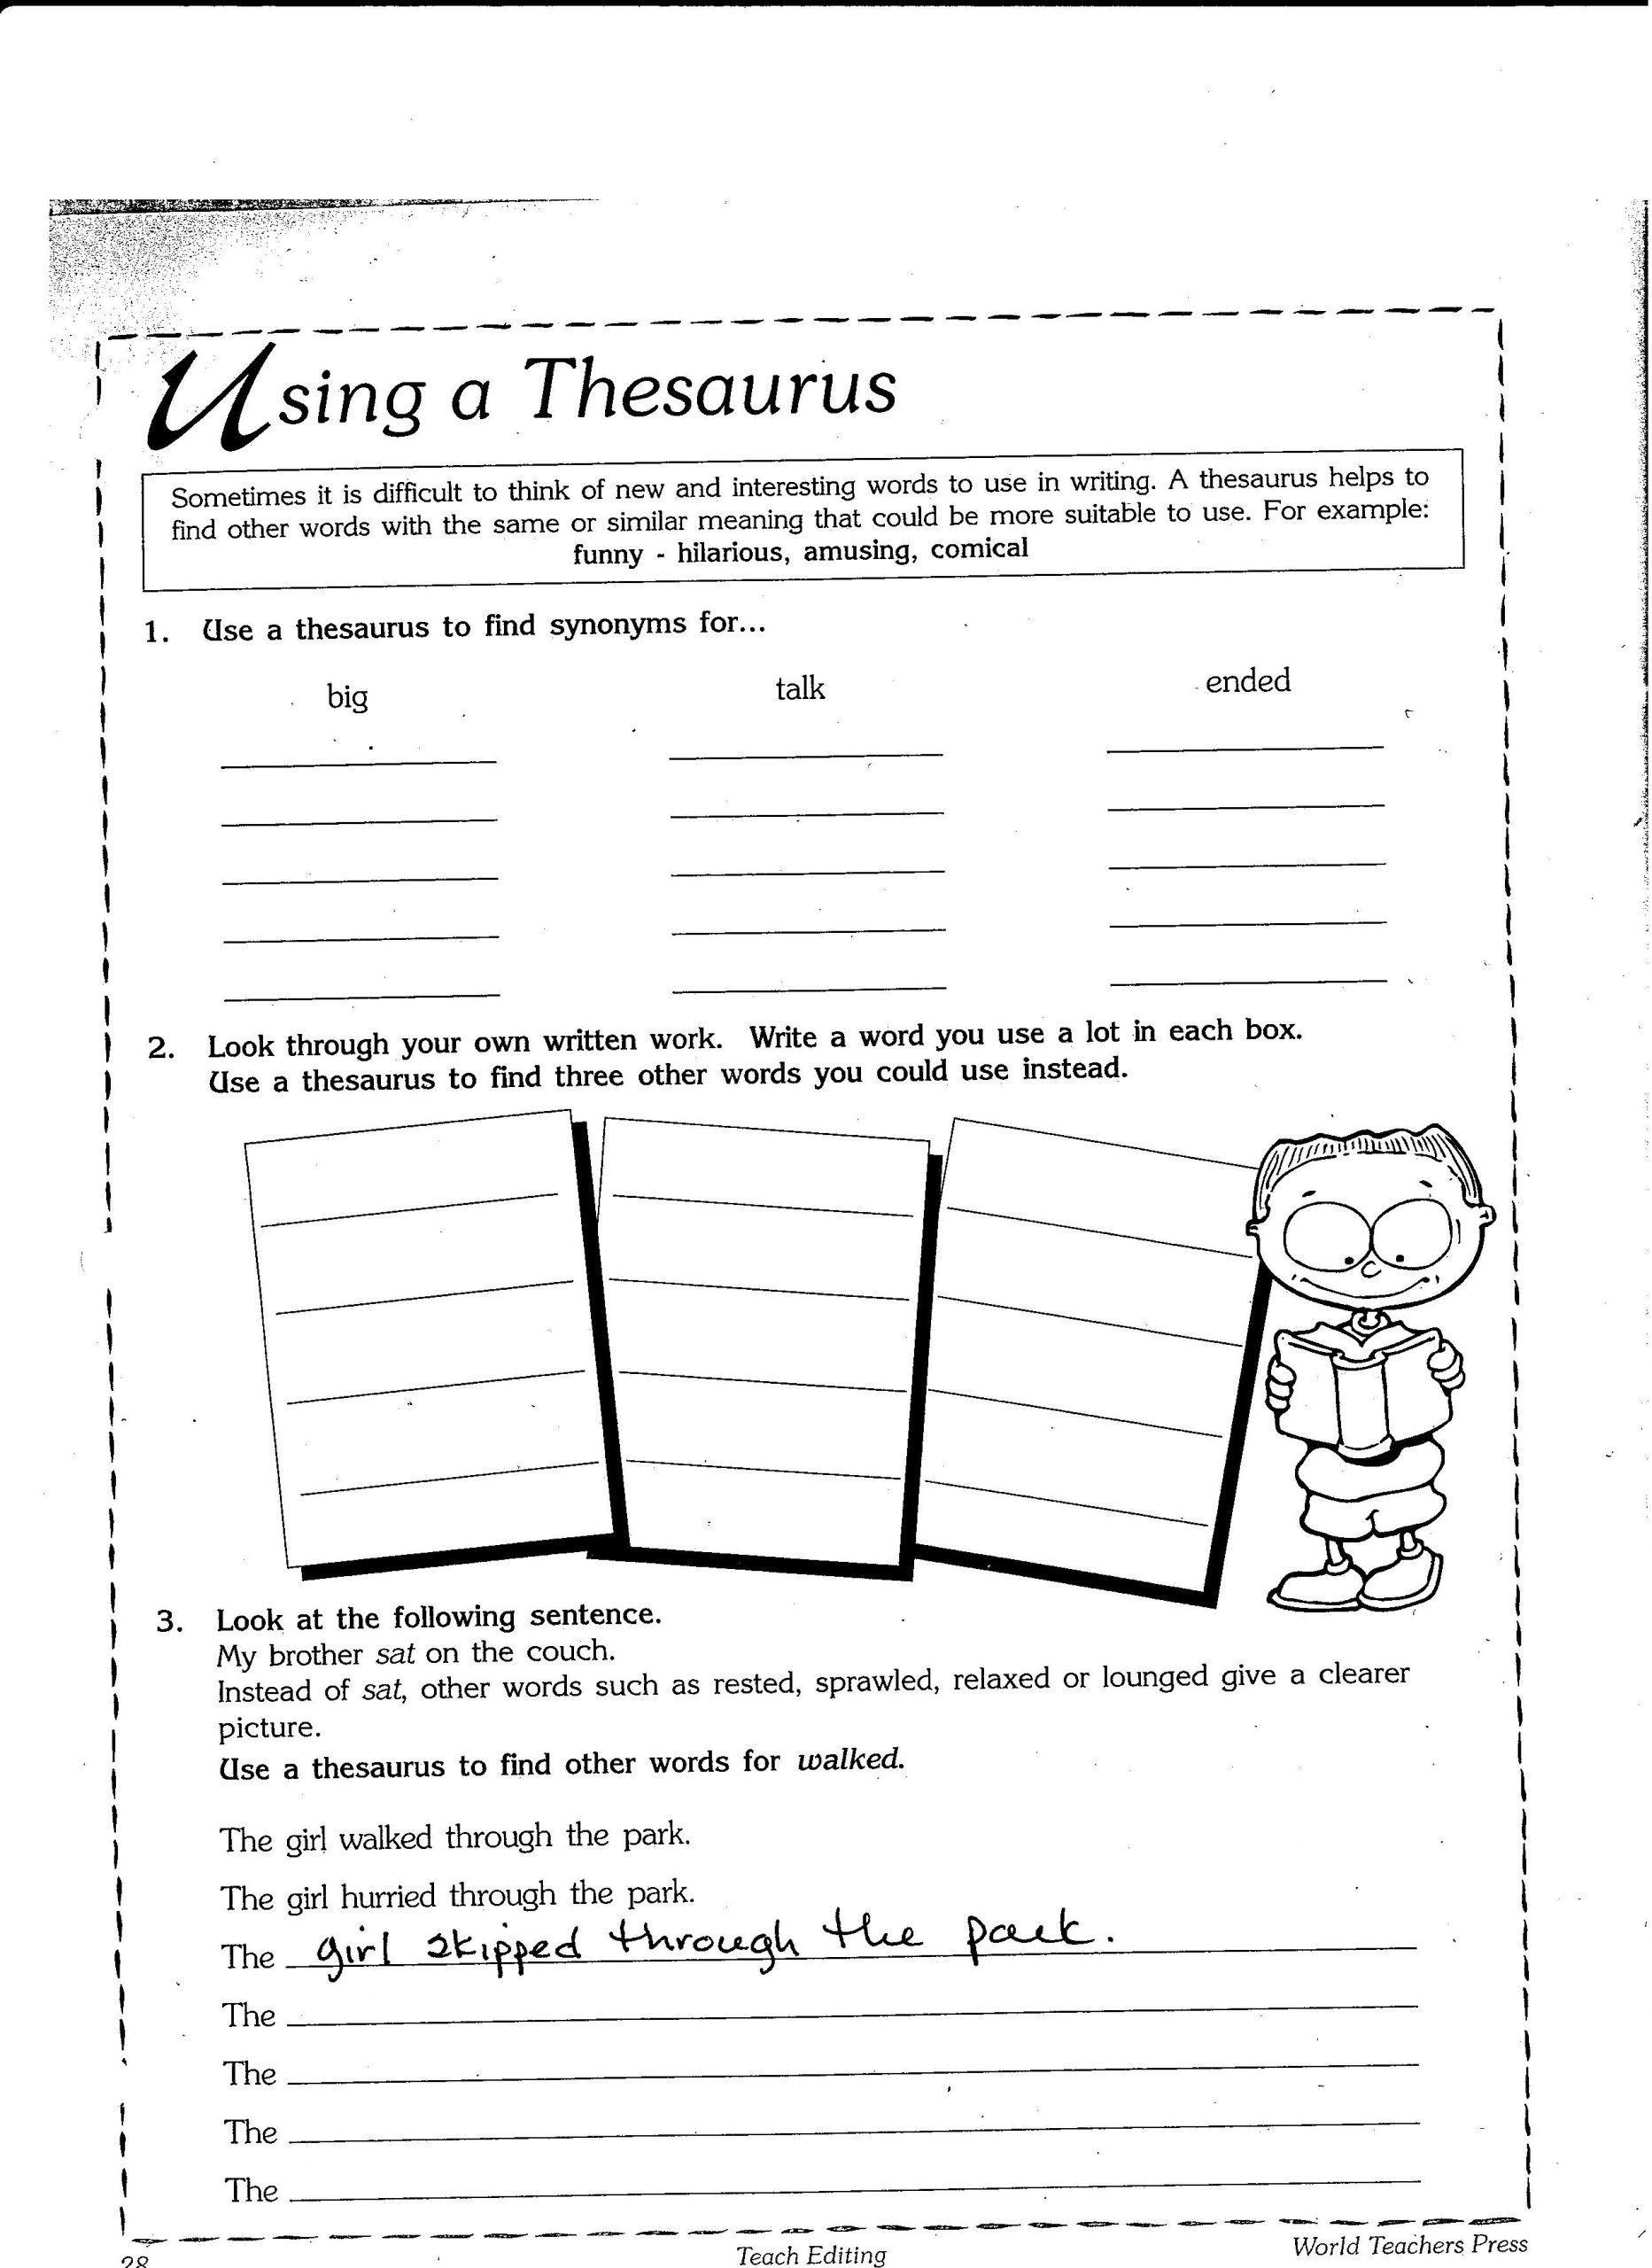 Editing Worksheets for High School Cool Math Games for Kids Best Coloring Pages to Print Free